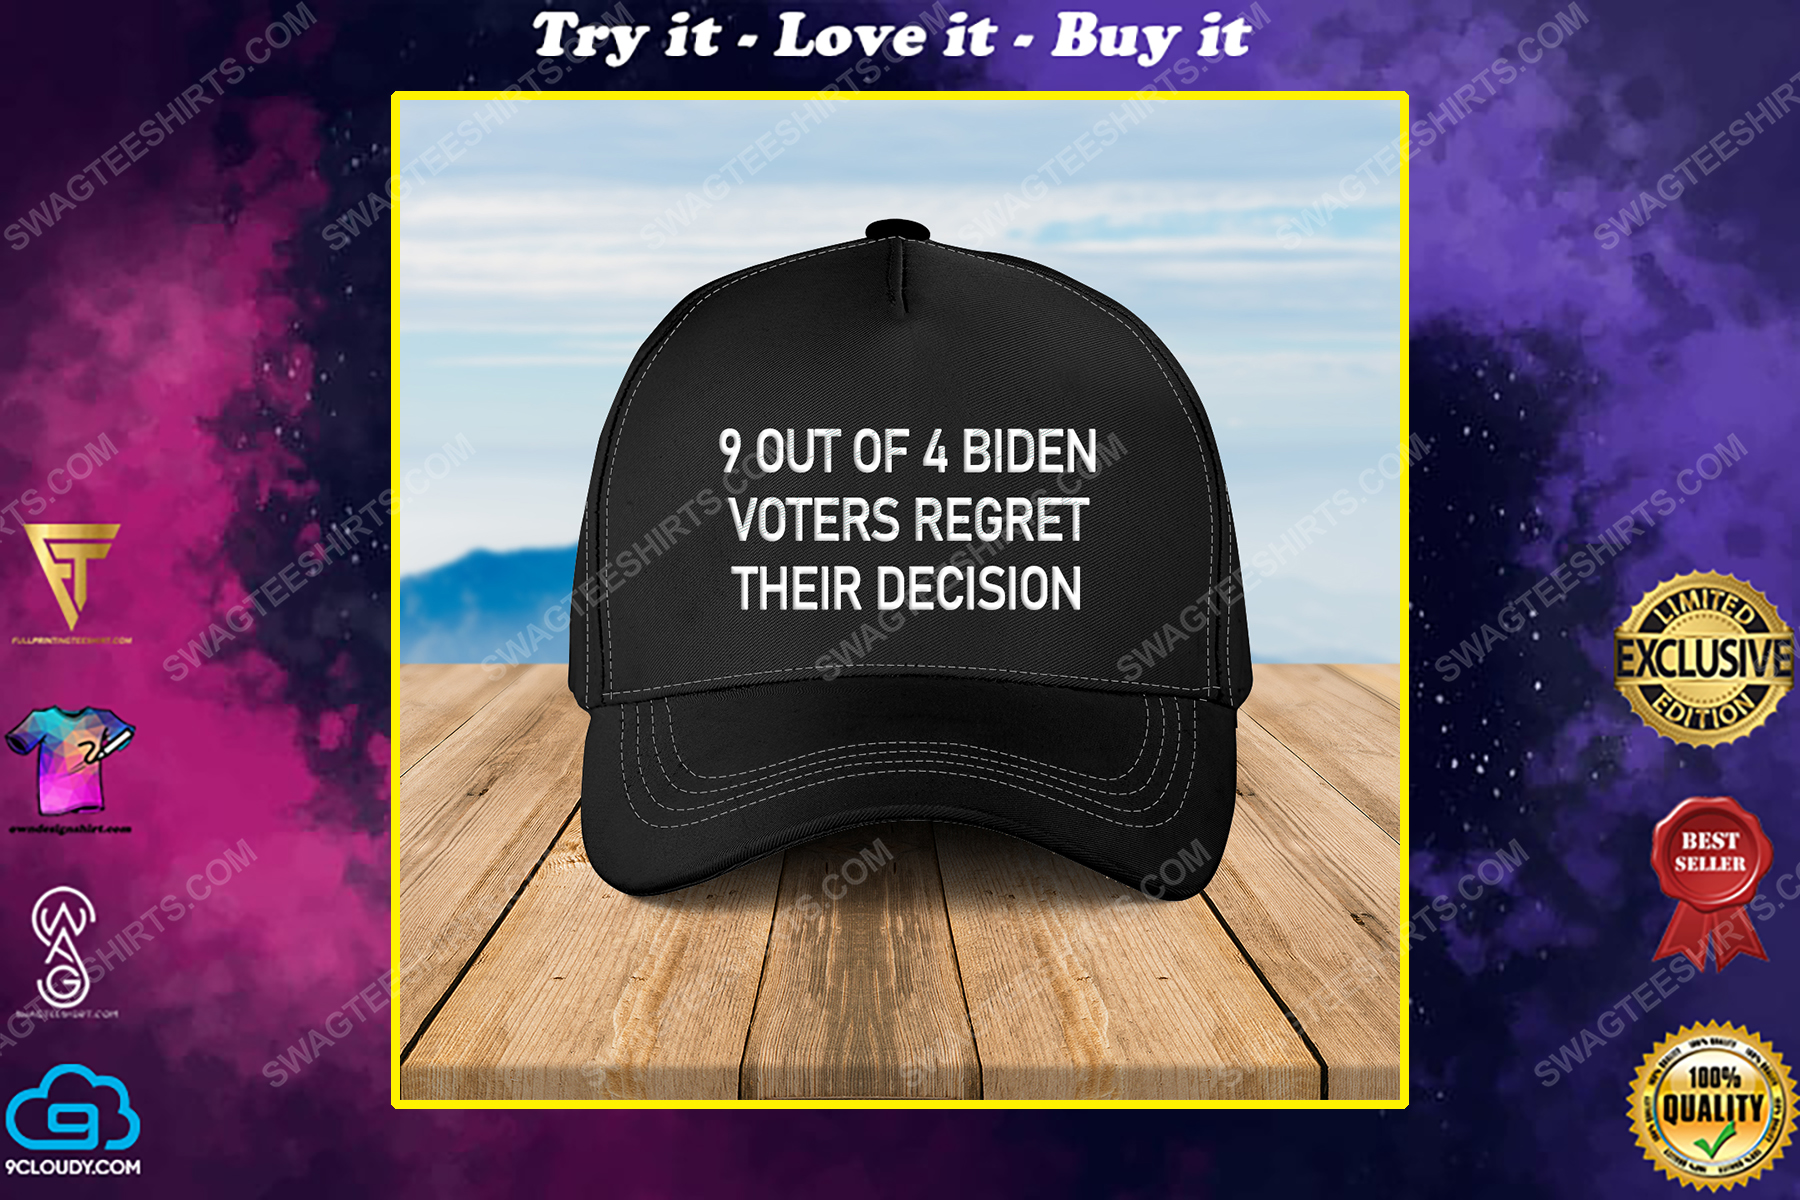 9 out of 4 biden voters regret their decision full print classic hat